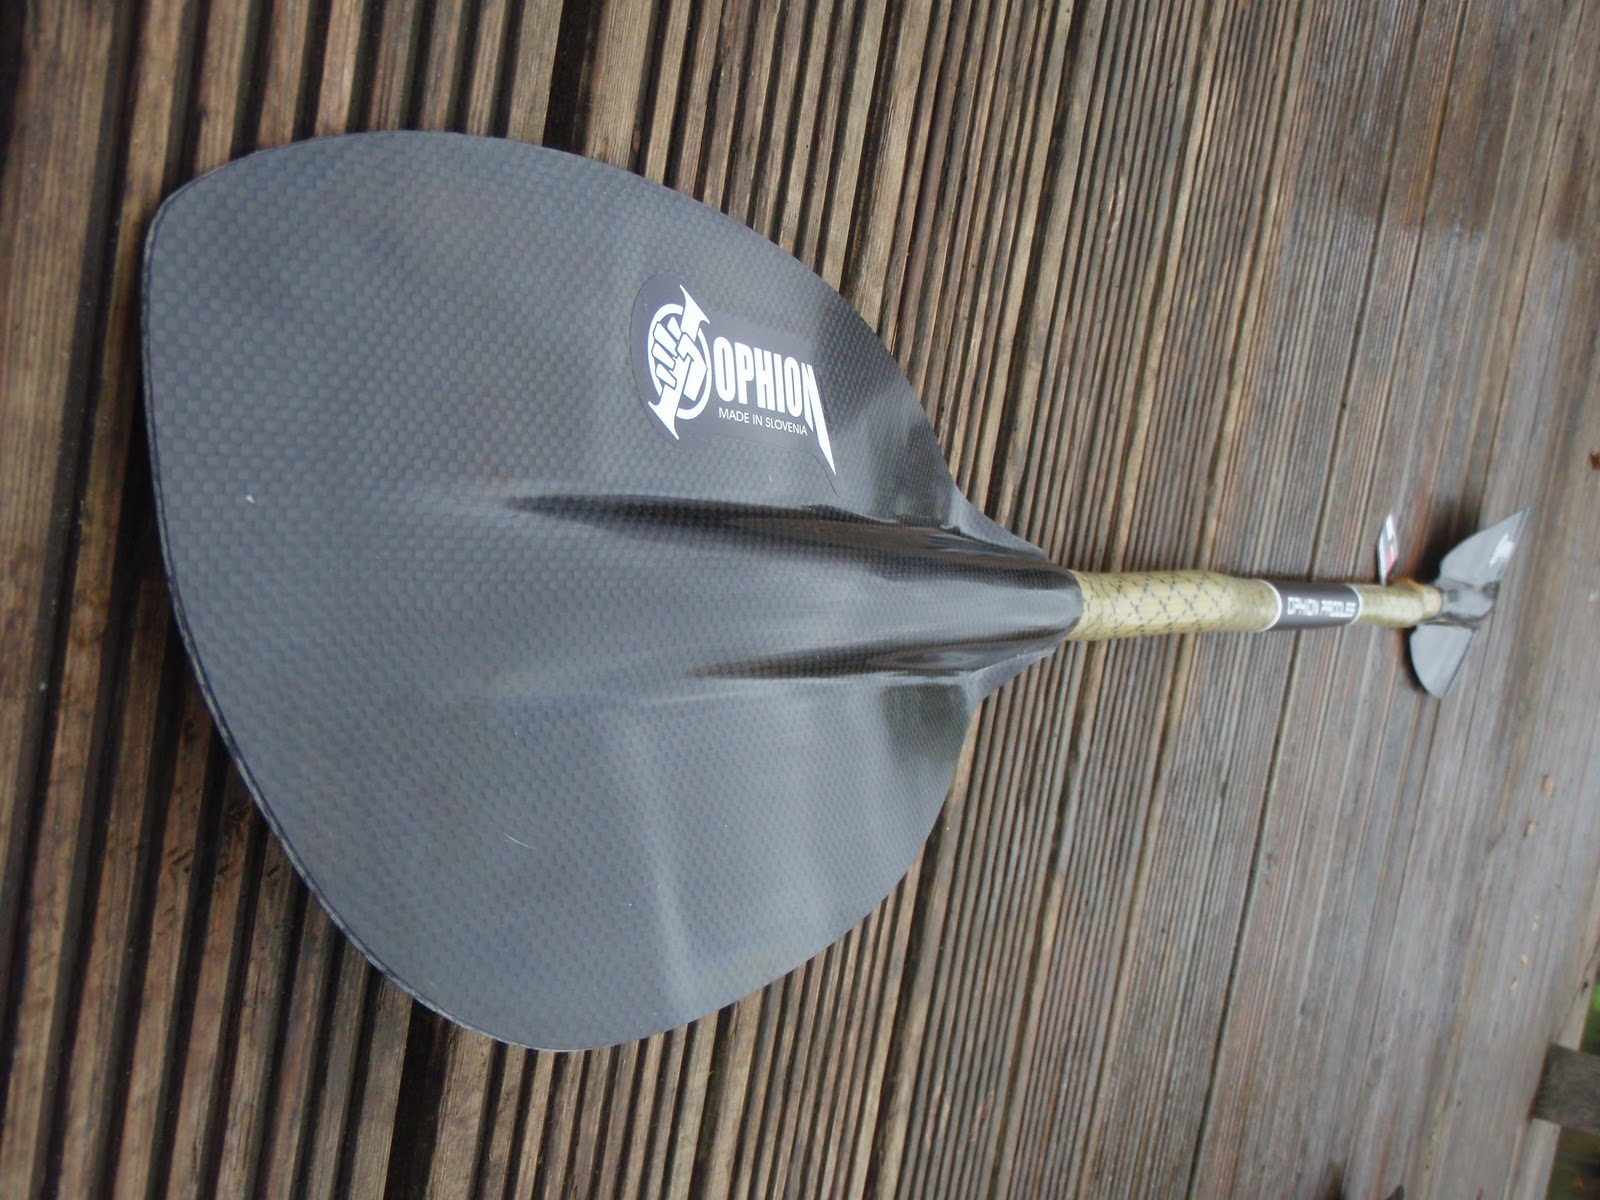 Canoe Kayak Trader Blog: New Ophion Paddles now in store!